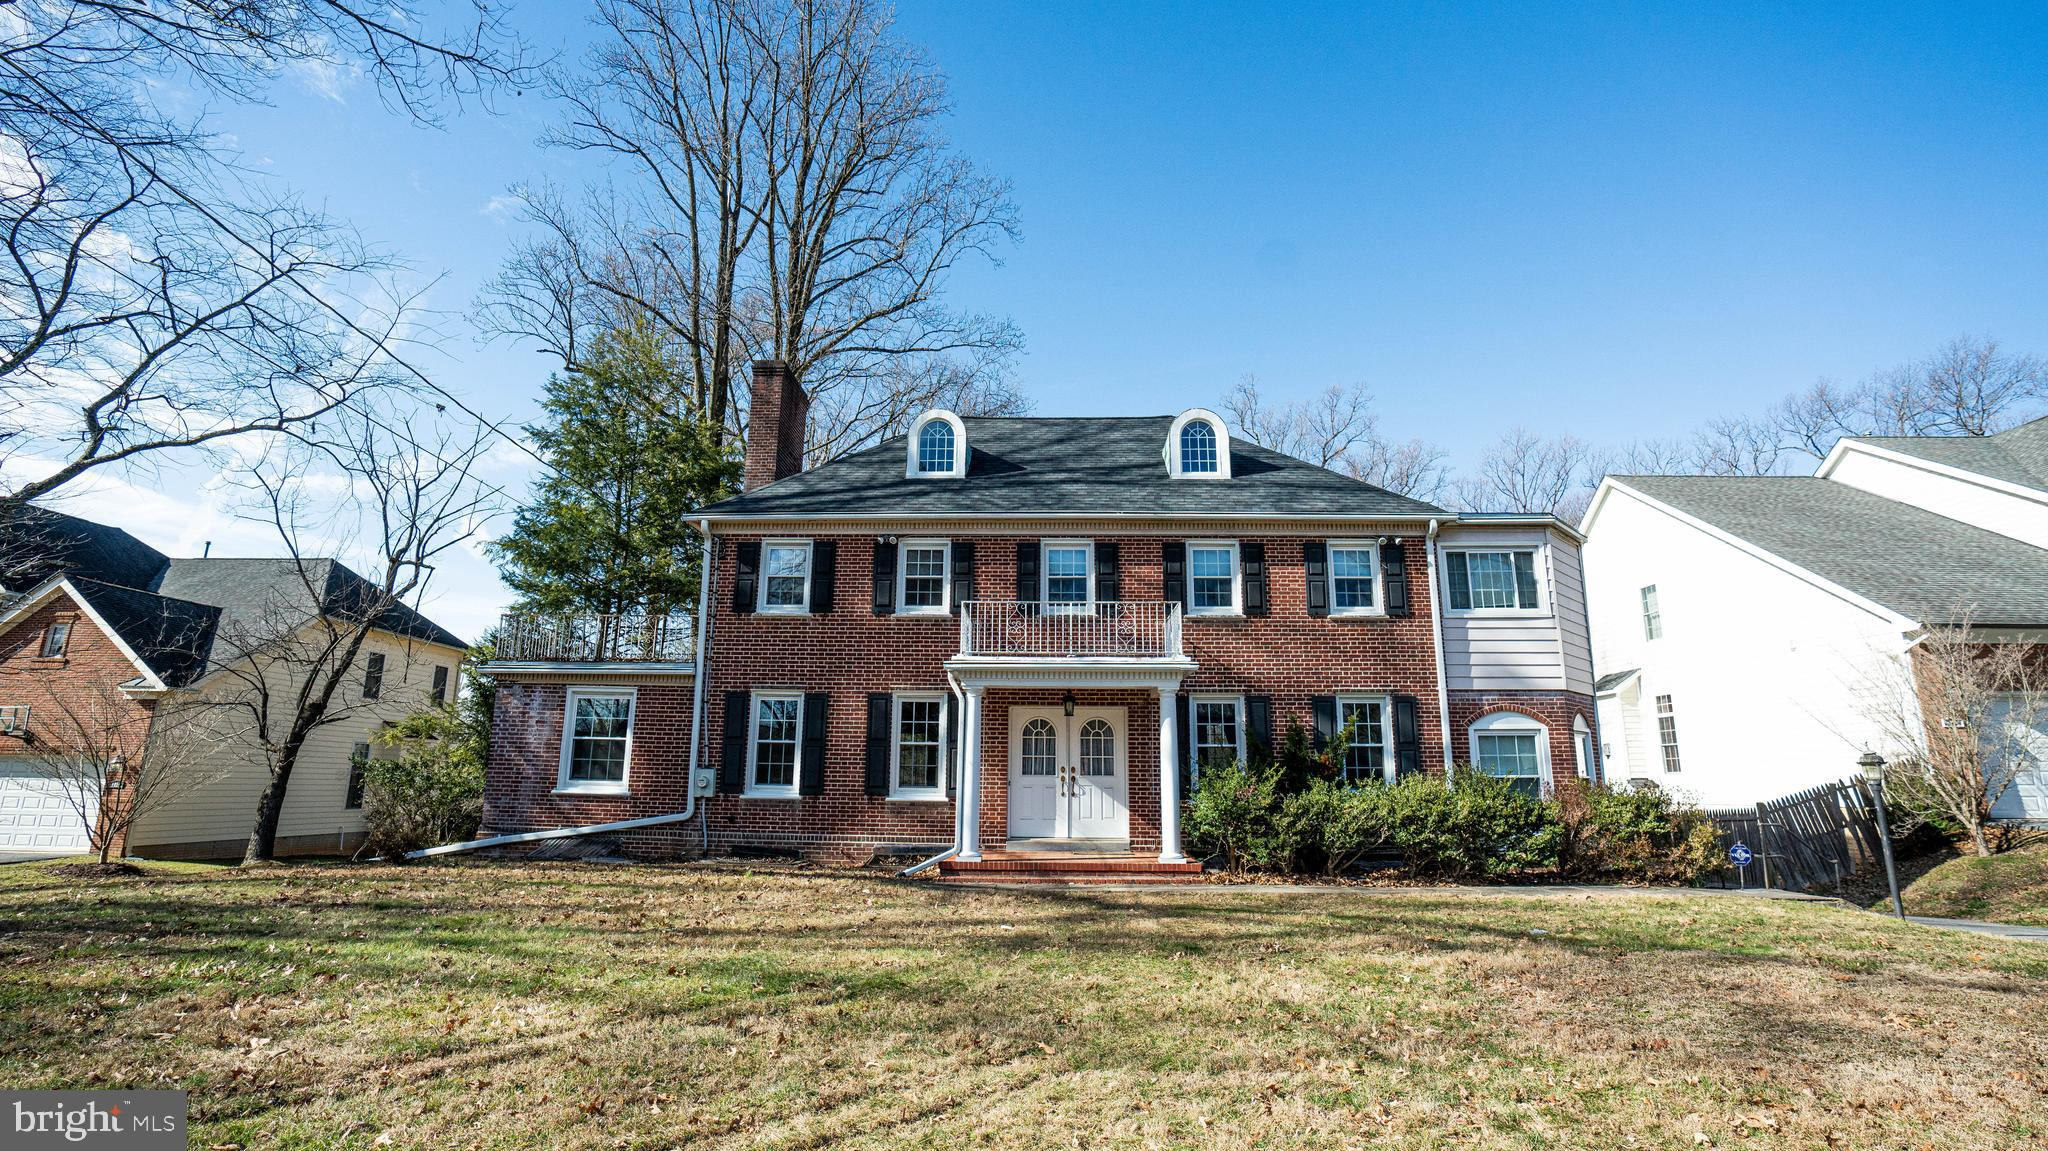 12710 TWO FARM DRIVE, SILVER SPRING, MD 20904